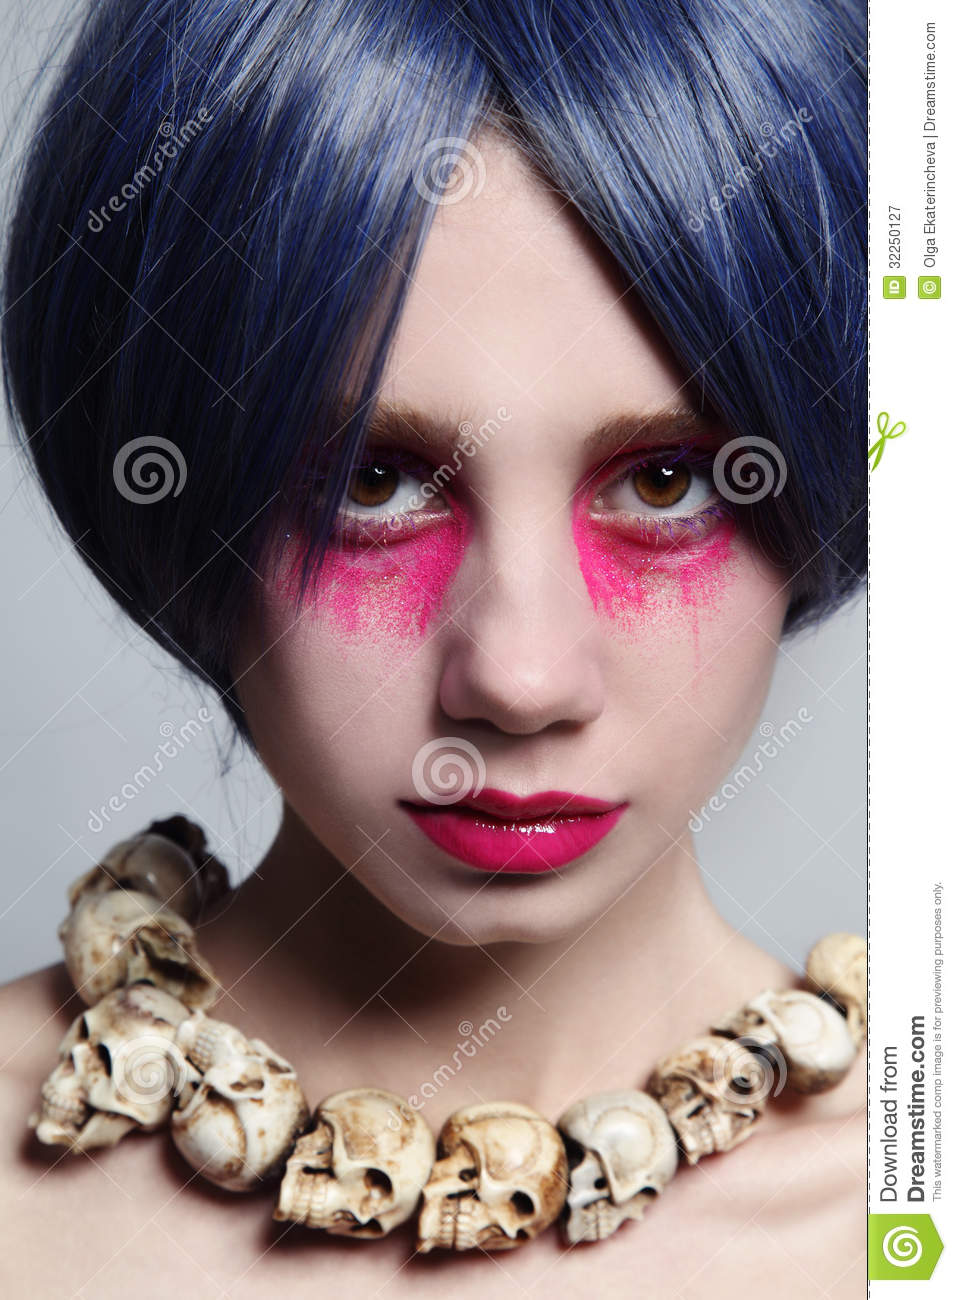 Evil angel stock image image of demon attractive look 32250127 - Free evil angel pictures ...